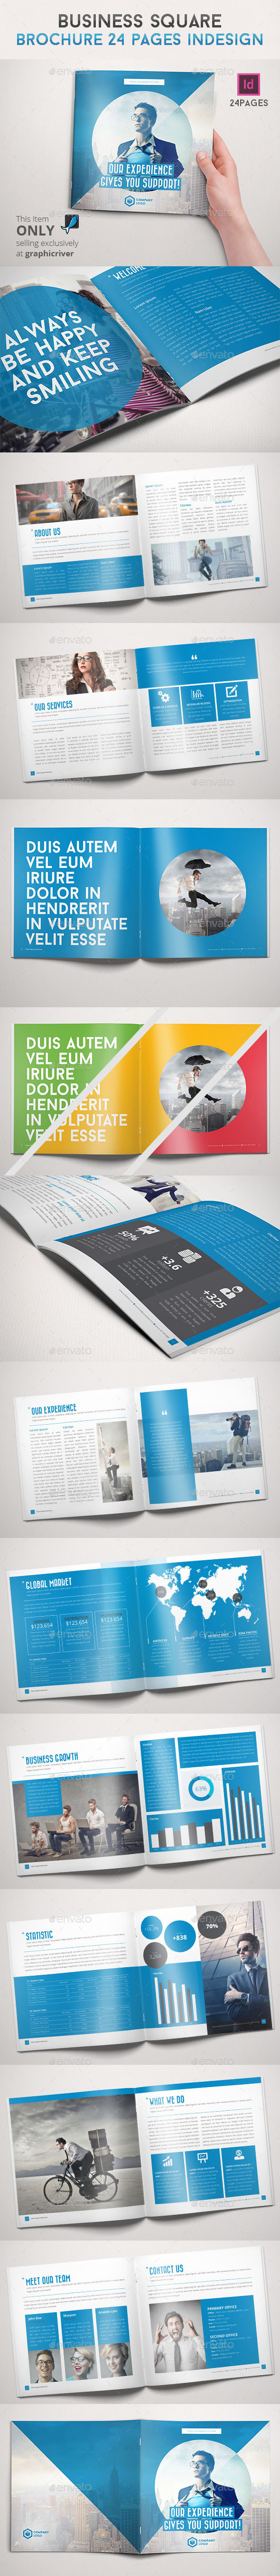 GraphicRiver Business Square Brochure 24 Pages Indesign 8984707